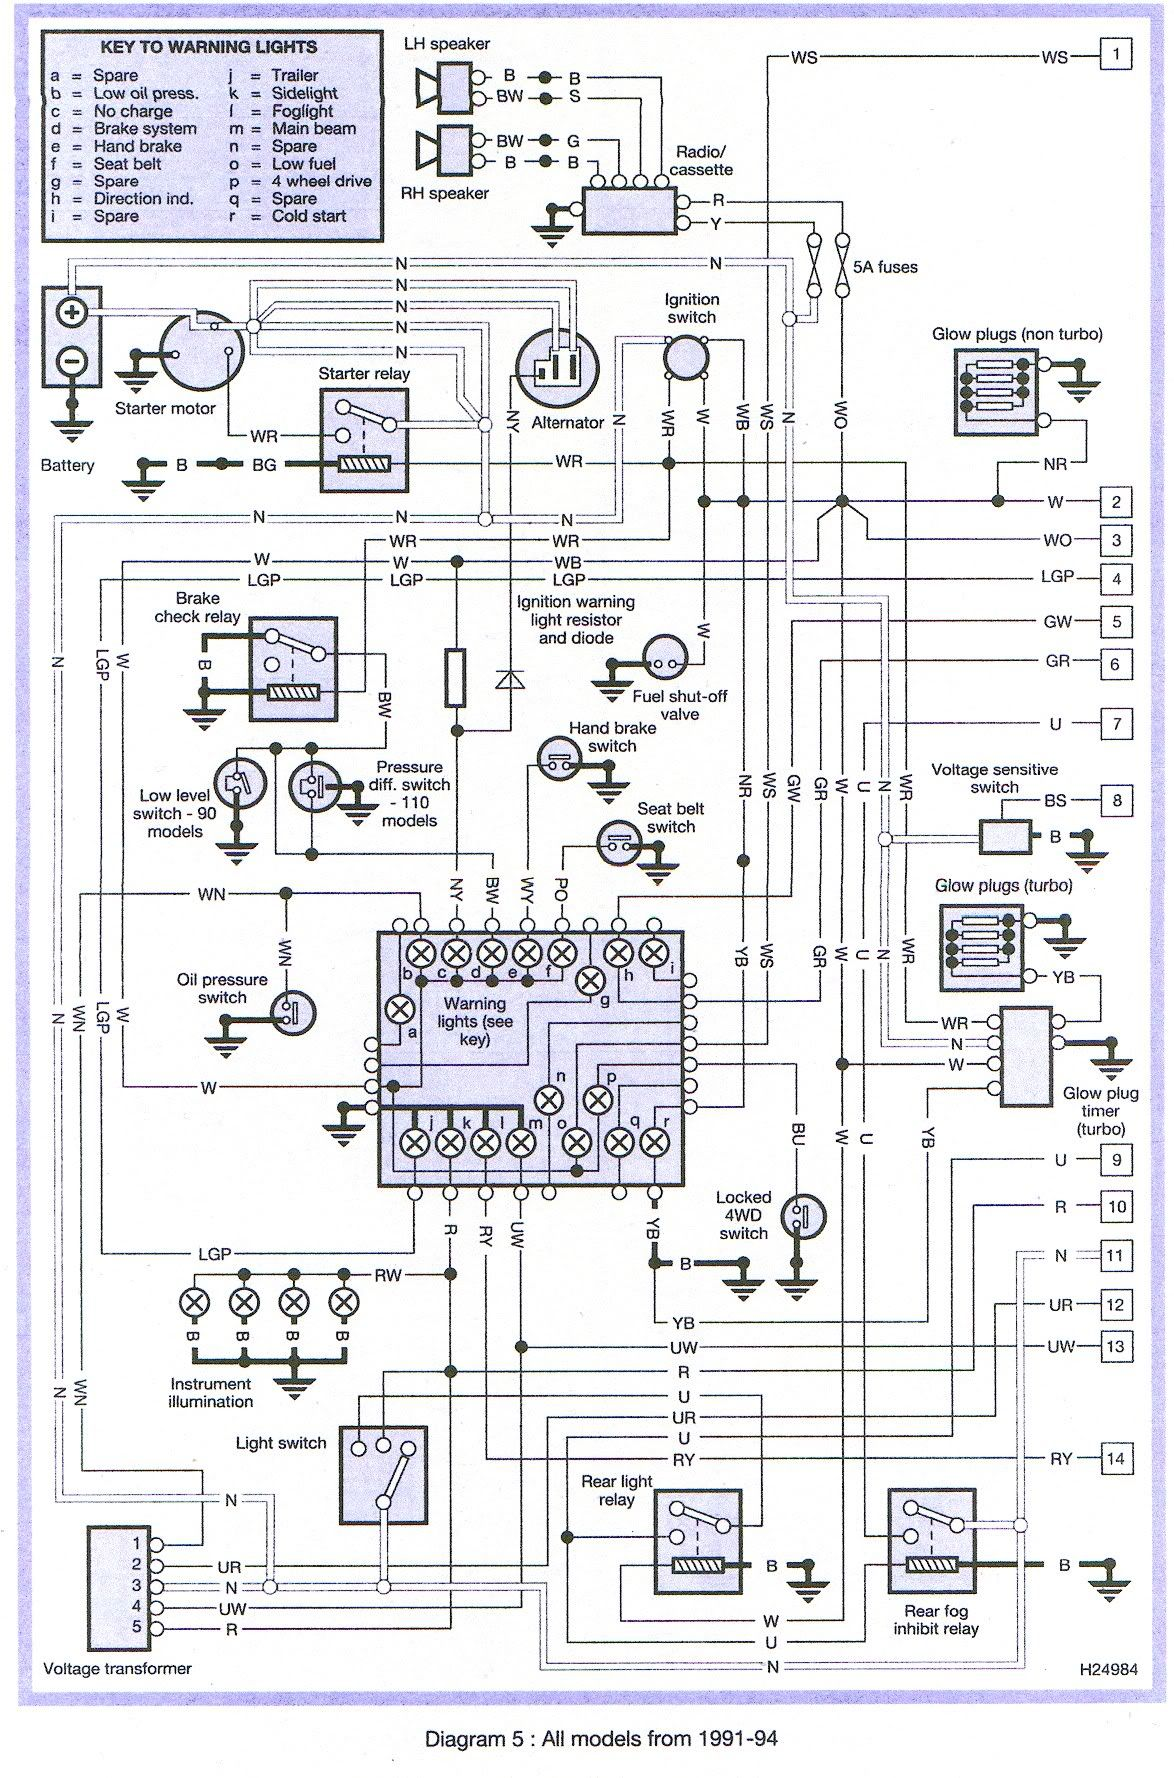 rover engine cooling diagram rover circuit diagrams wiring diagram land rover discovery wiring diagram manual repair [ 1174 x 1778 Pixel ]